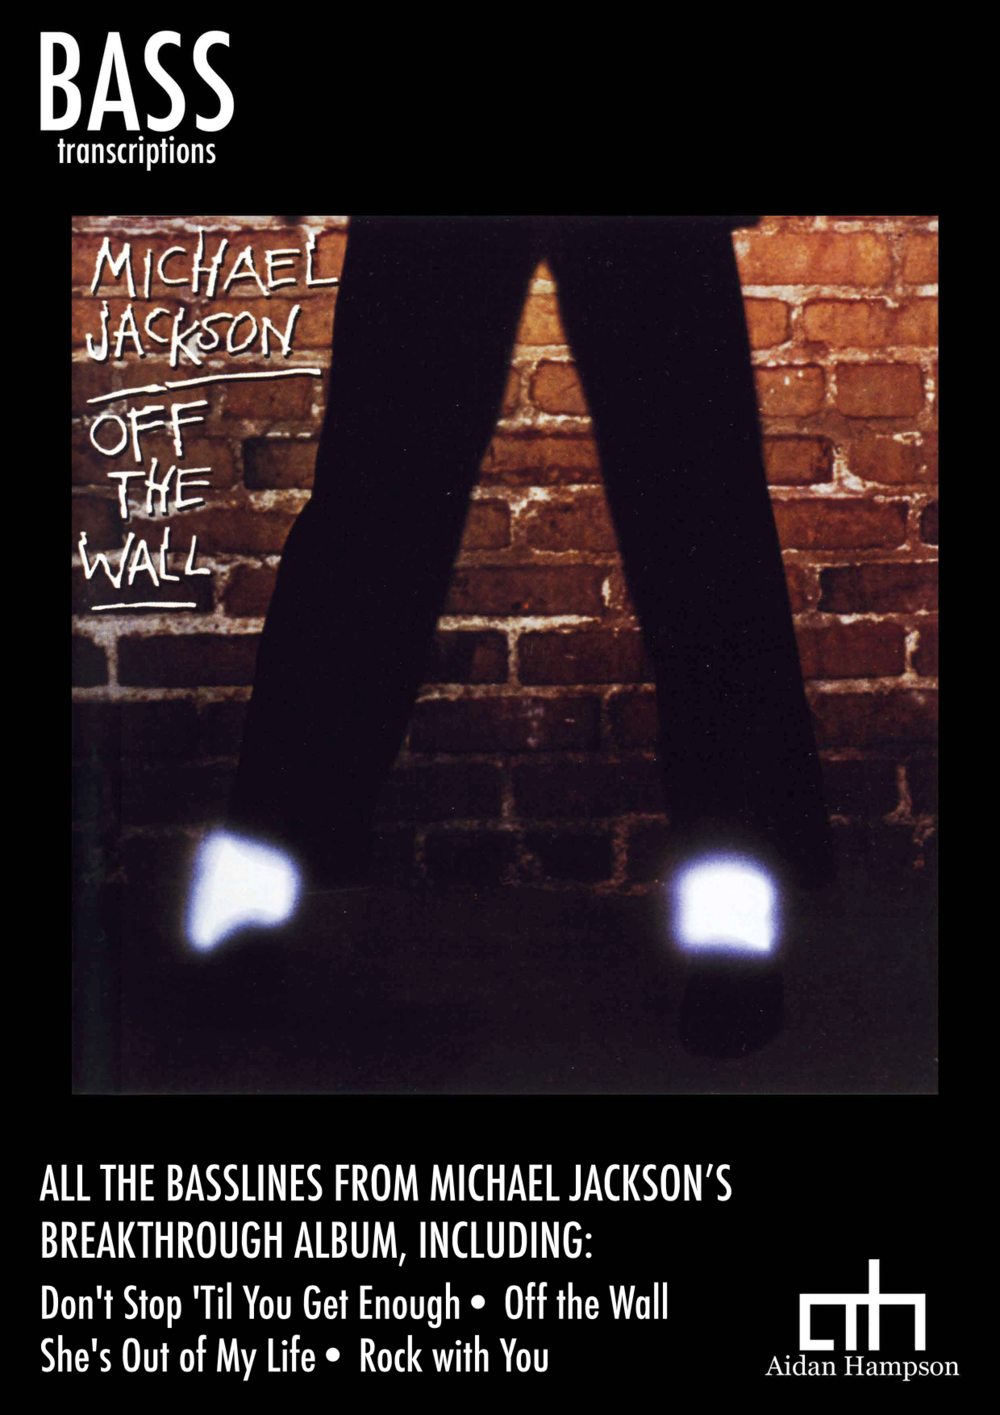 Michael Jackson - Off The Wallhttps://www.bassbooks.com/shopping/products/1359-michael-jackson-off-the-wall-ebookpdf/